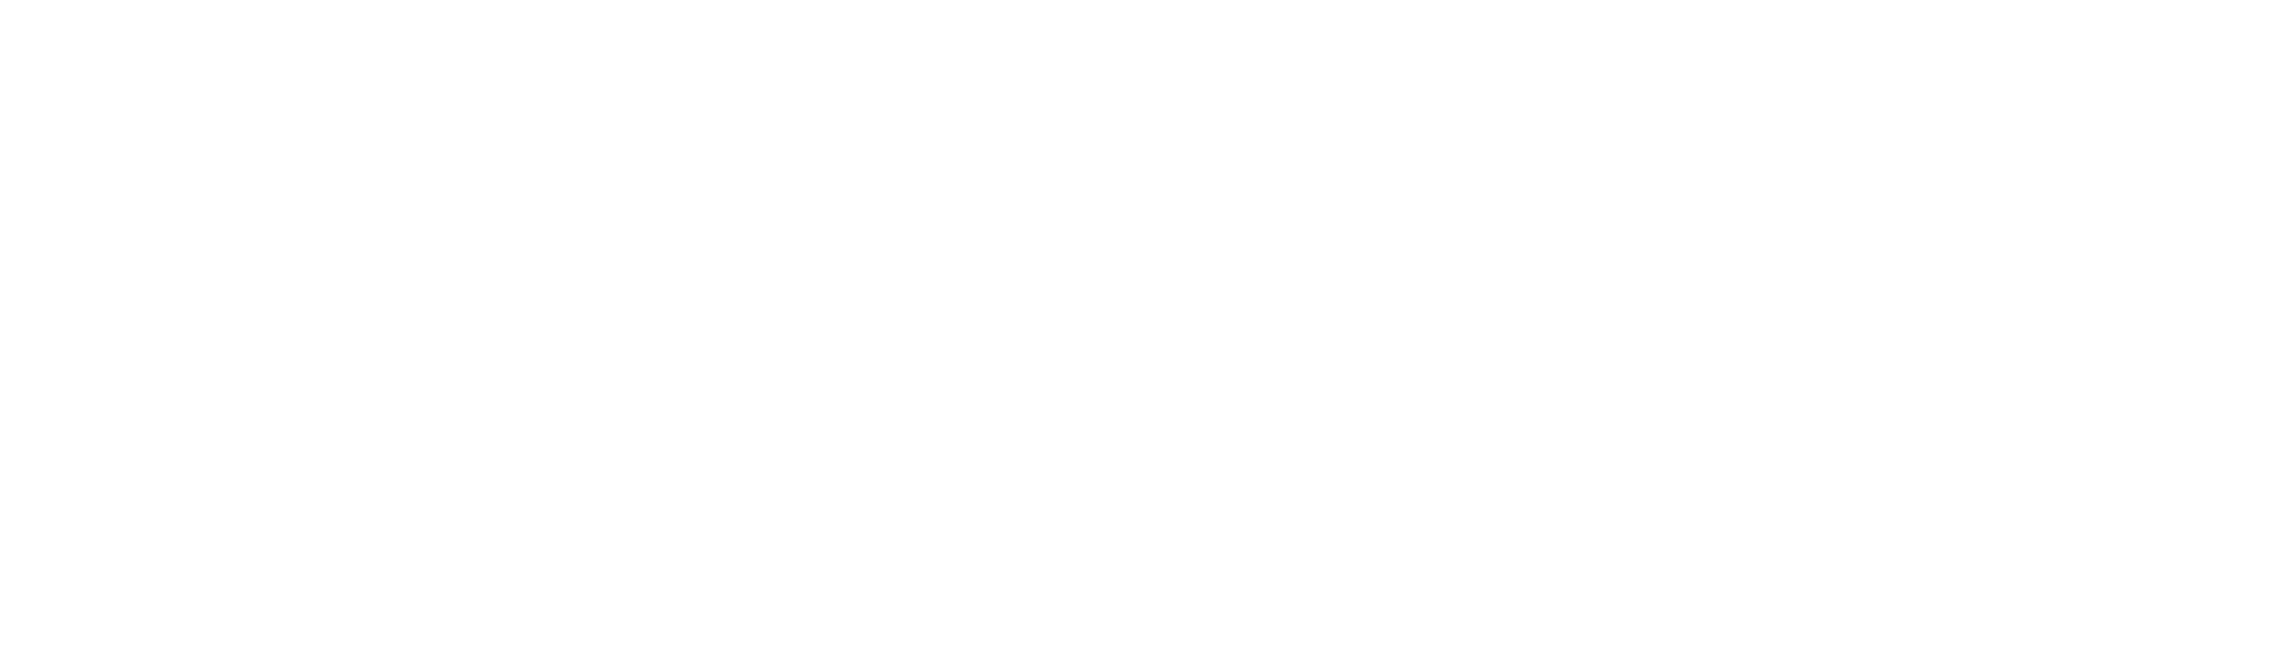 Blue Mountains Building Design